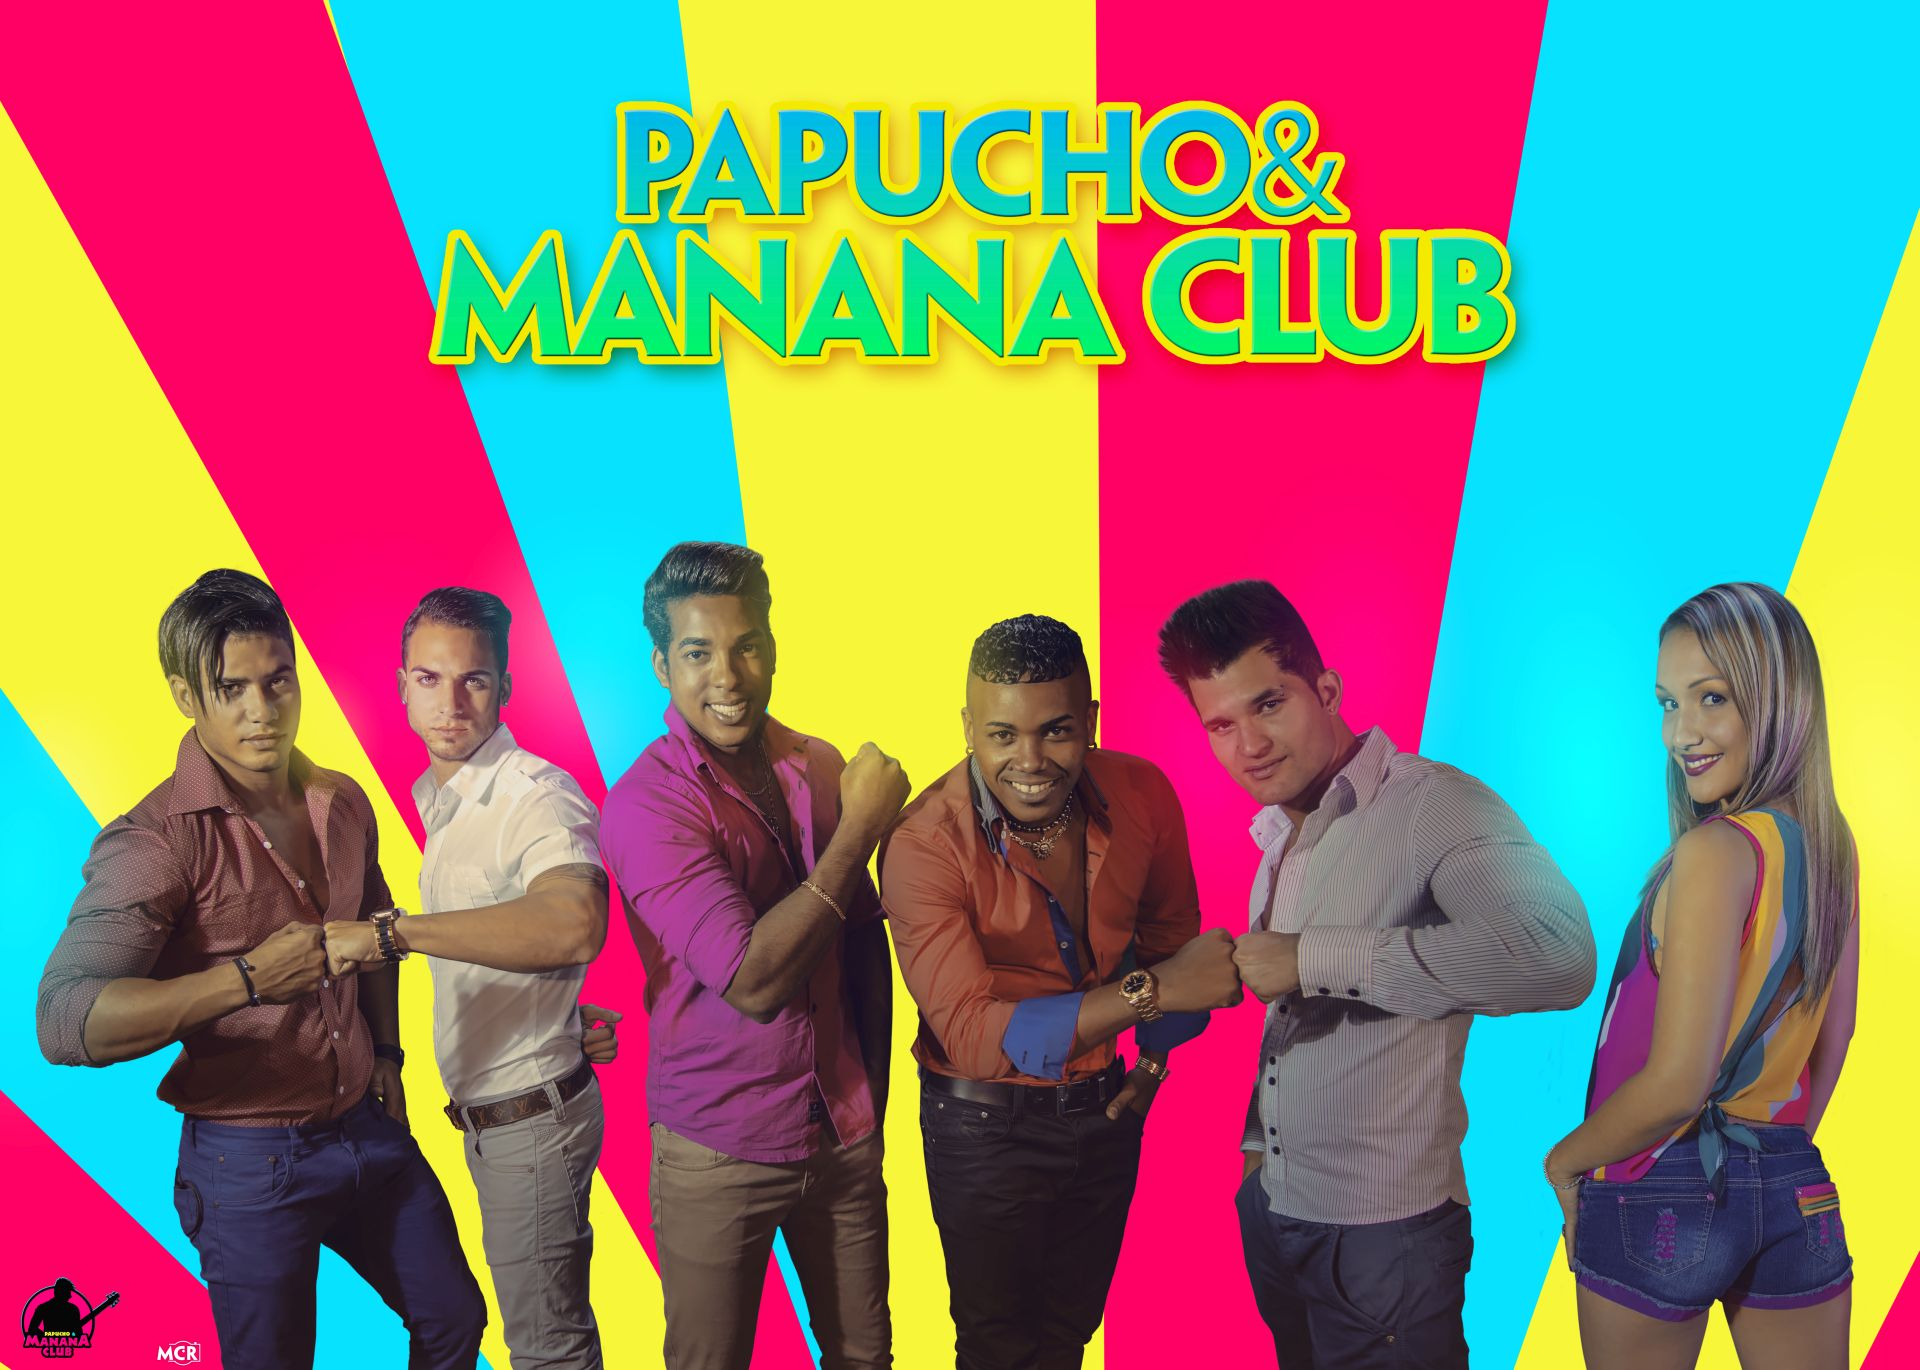 Manana Club Y Papucho_all4b.jpg